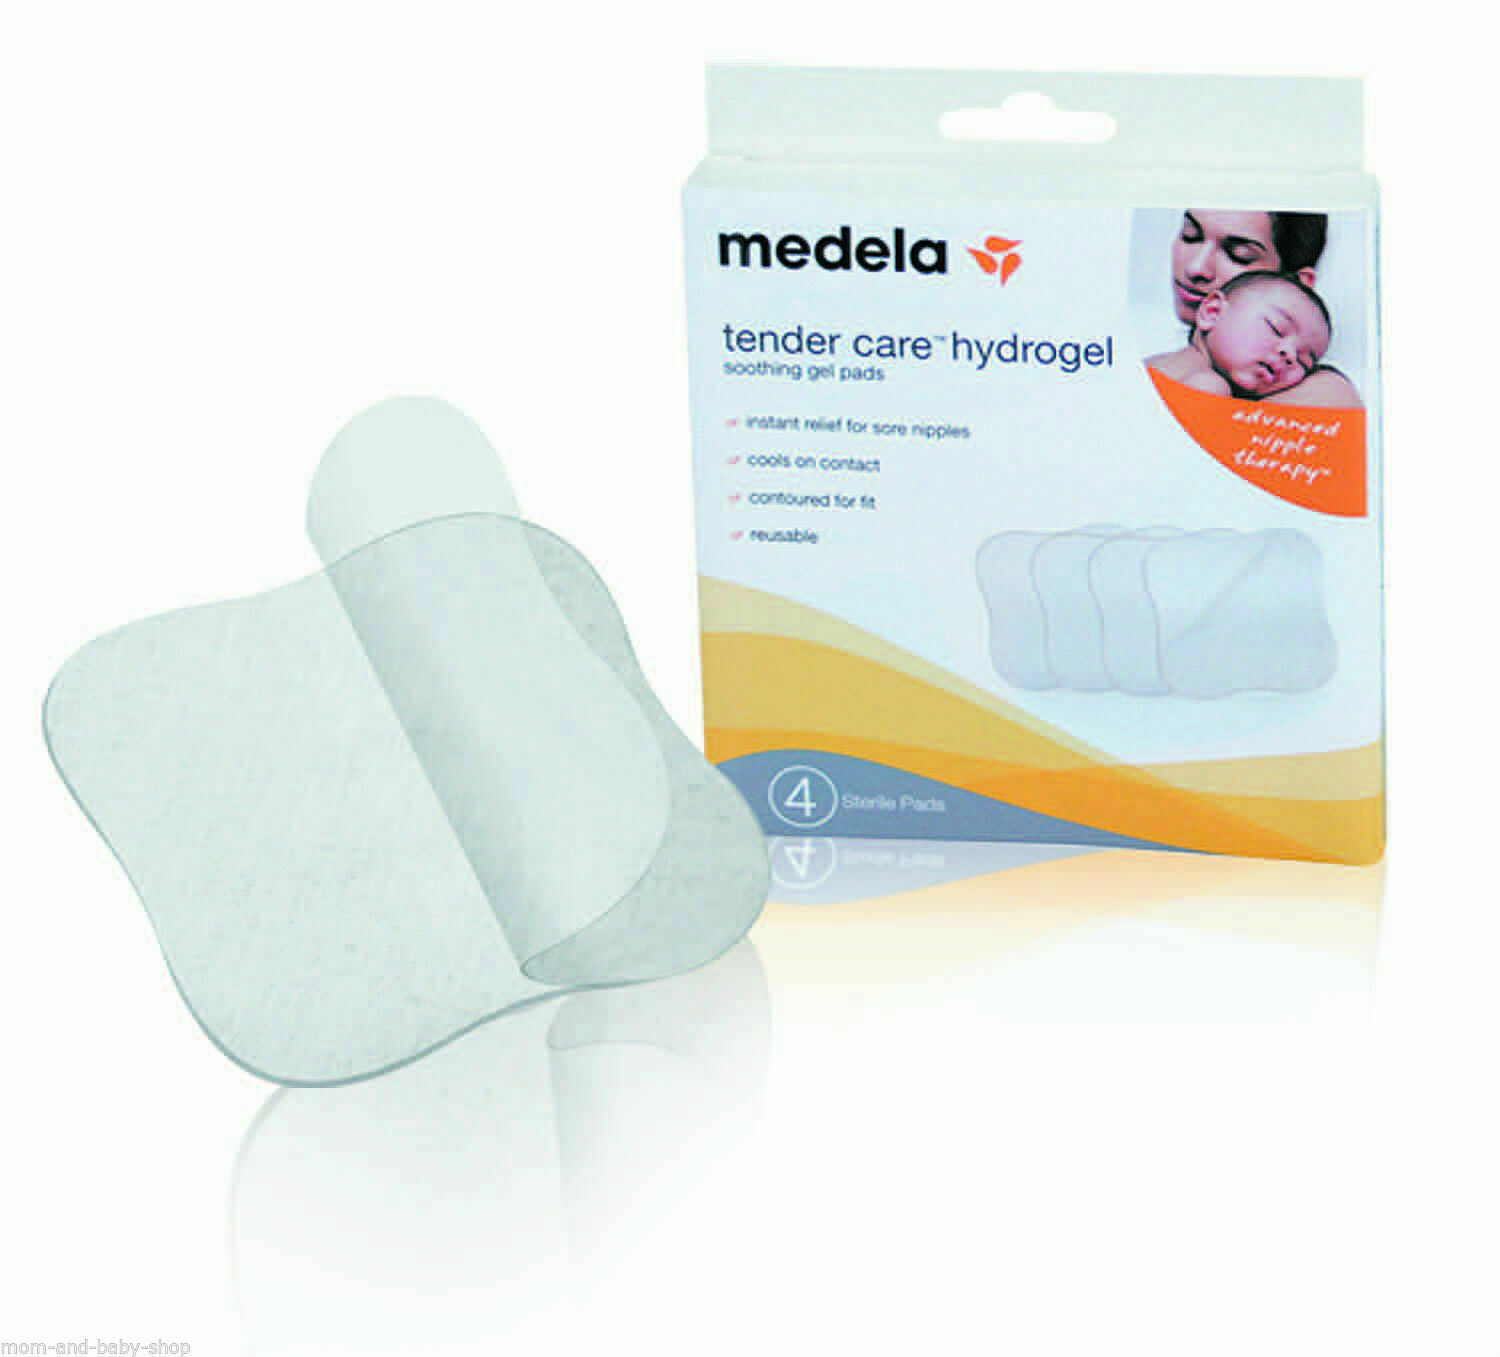 Primary image for MEDELA BREAST FEEDING TENDER CARE HYDROGEL PADS SORE CRACKED NIPPLE x4 #87123